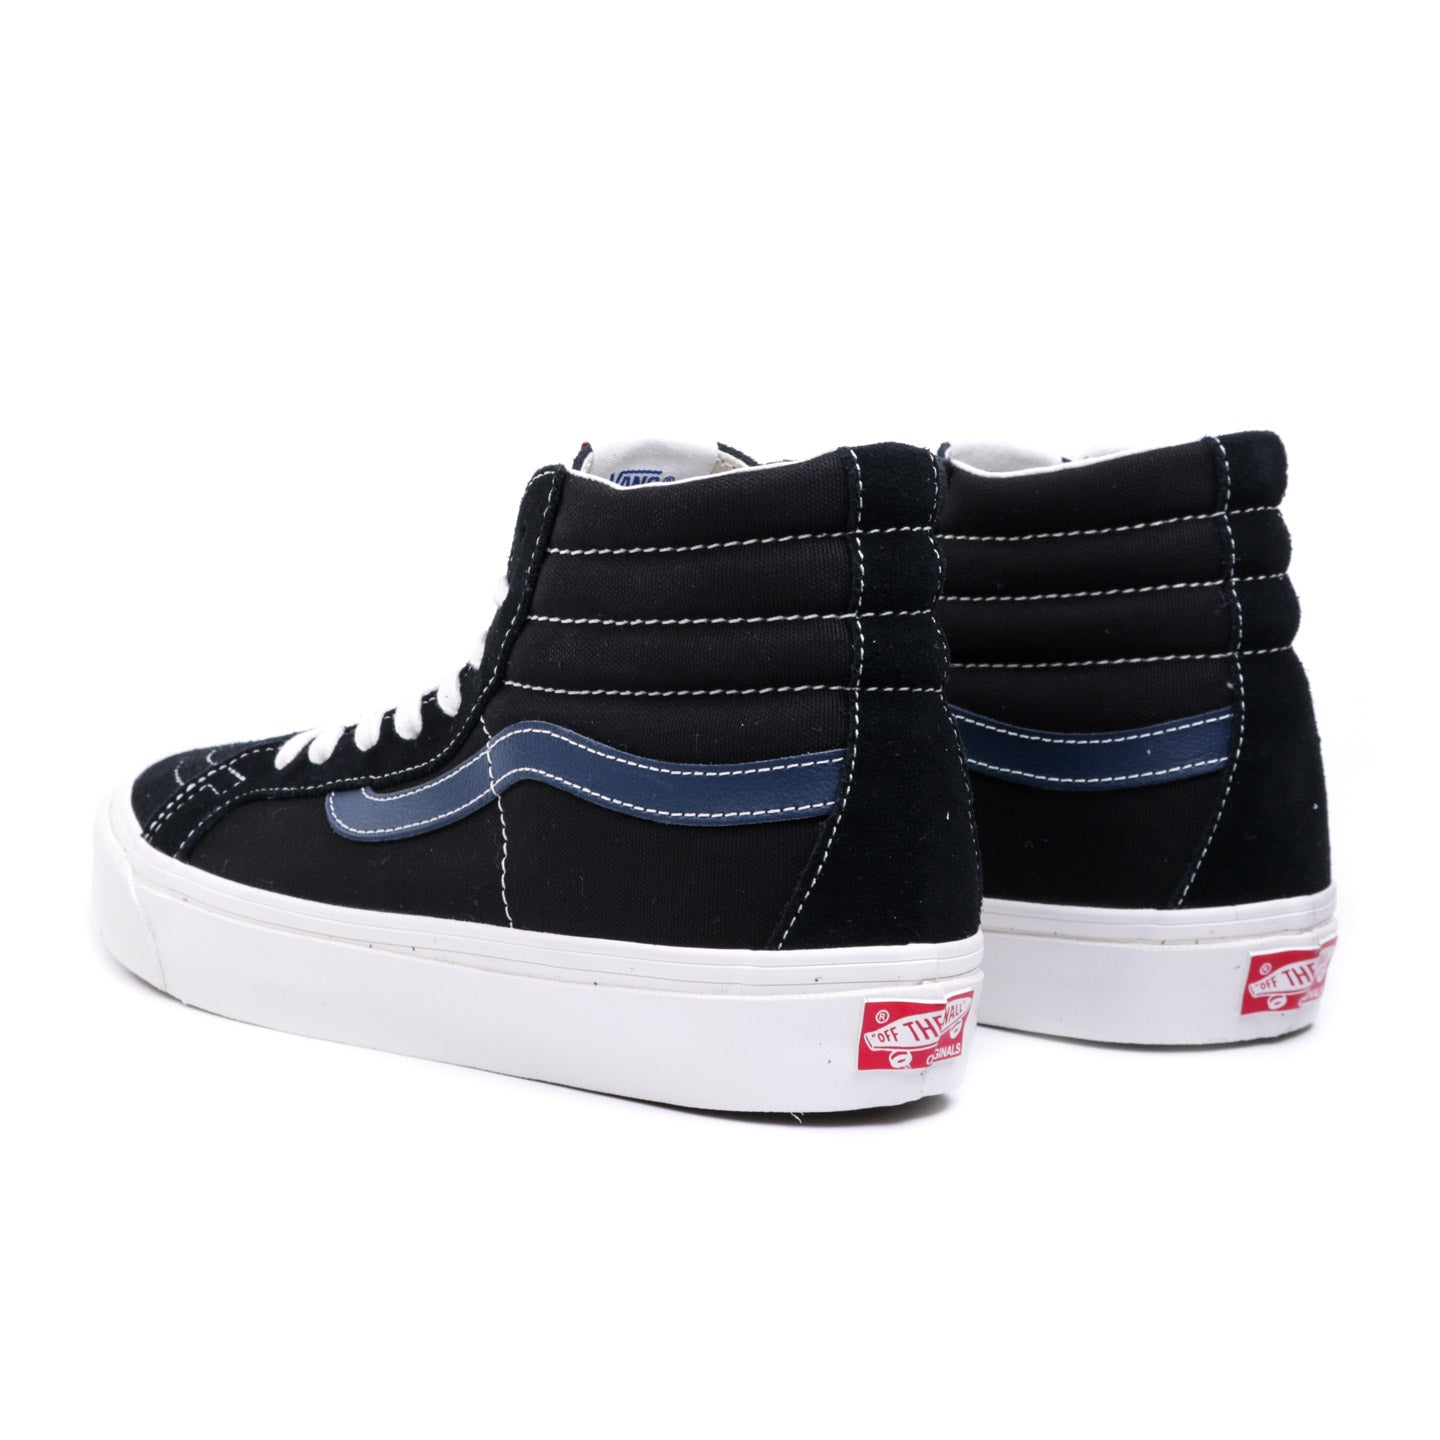 VAULT BY VANS OG SK8-HI LX BLACK / DRESS BLUE